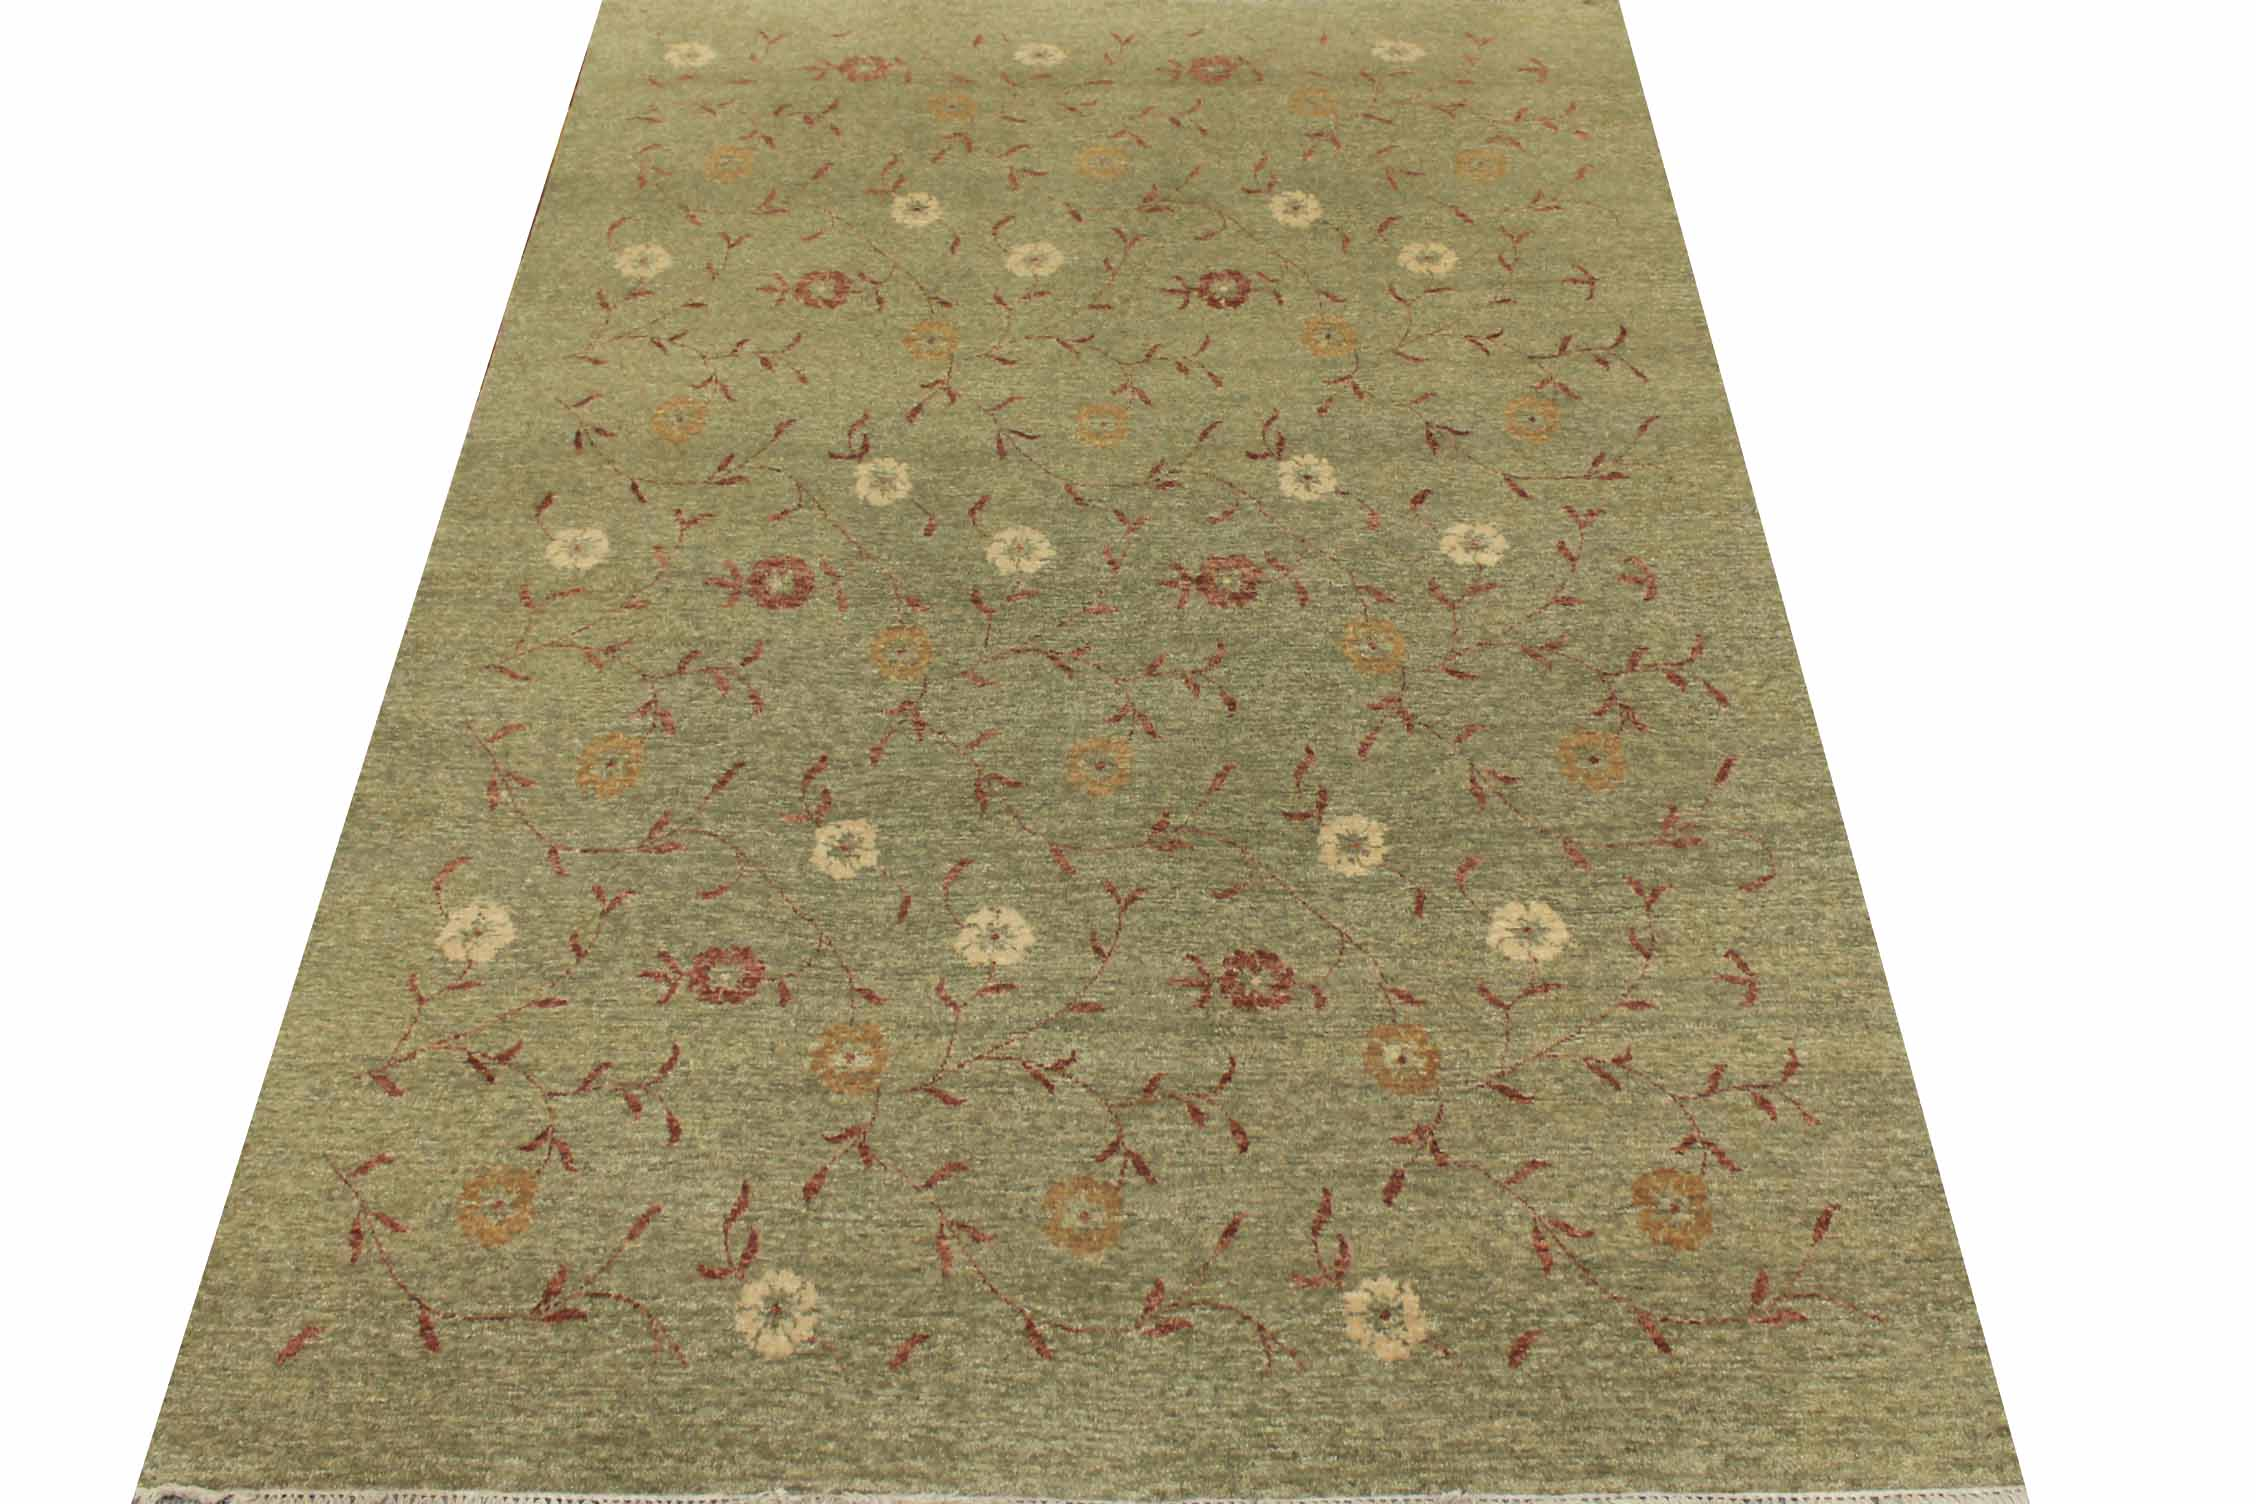 5x7/8 Contemporary Hand Knotted Wool Area Rug - MR8438